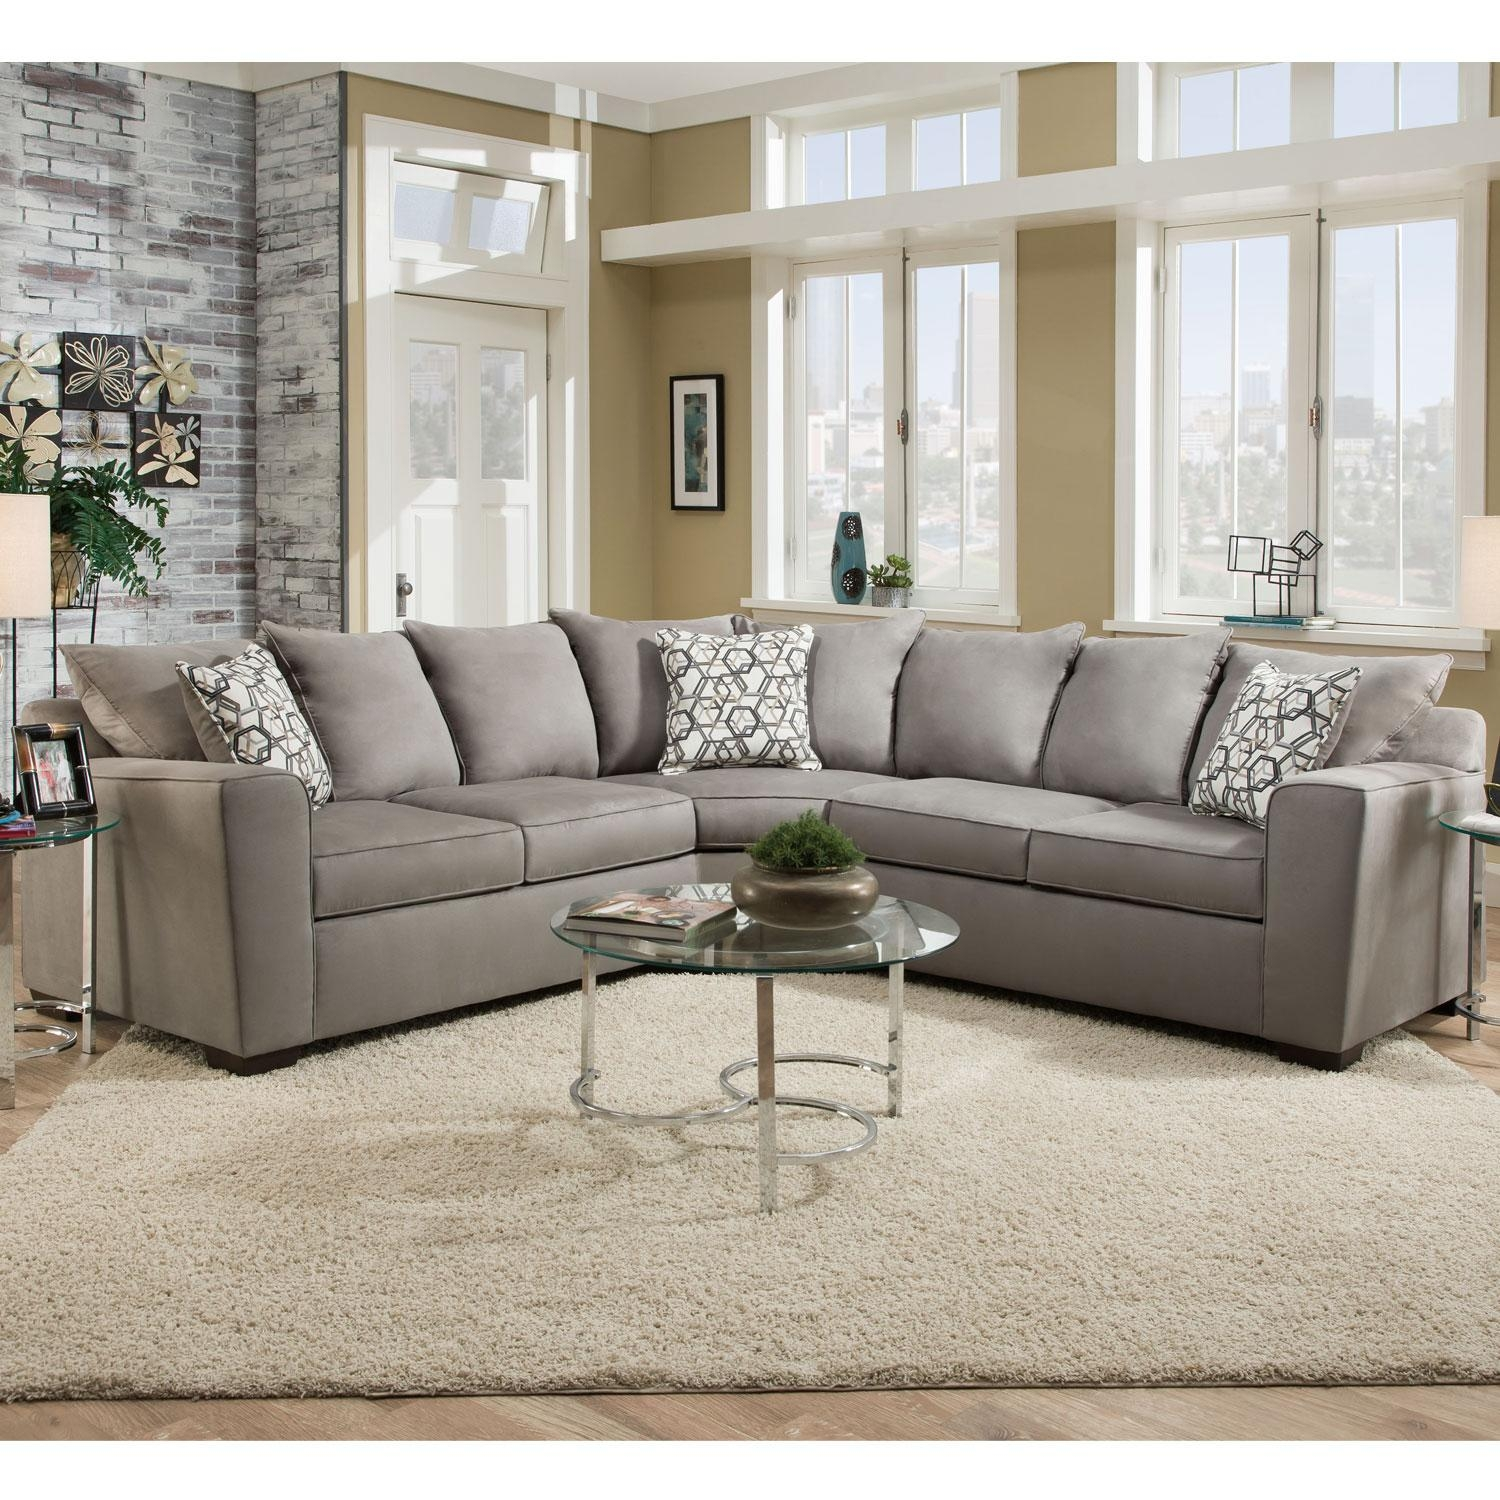 Simmons 8530Br Sectional Sofa Bellamy Slate | Hope Home In Simmons Sectional Sofas (Image 4 of 20)